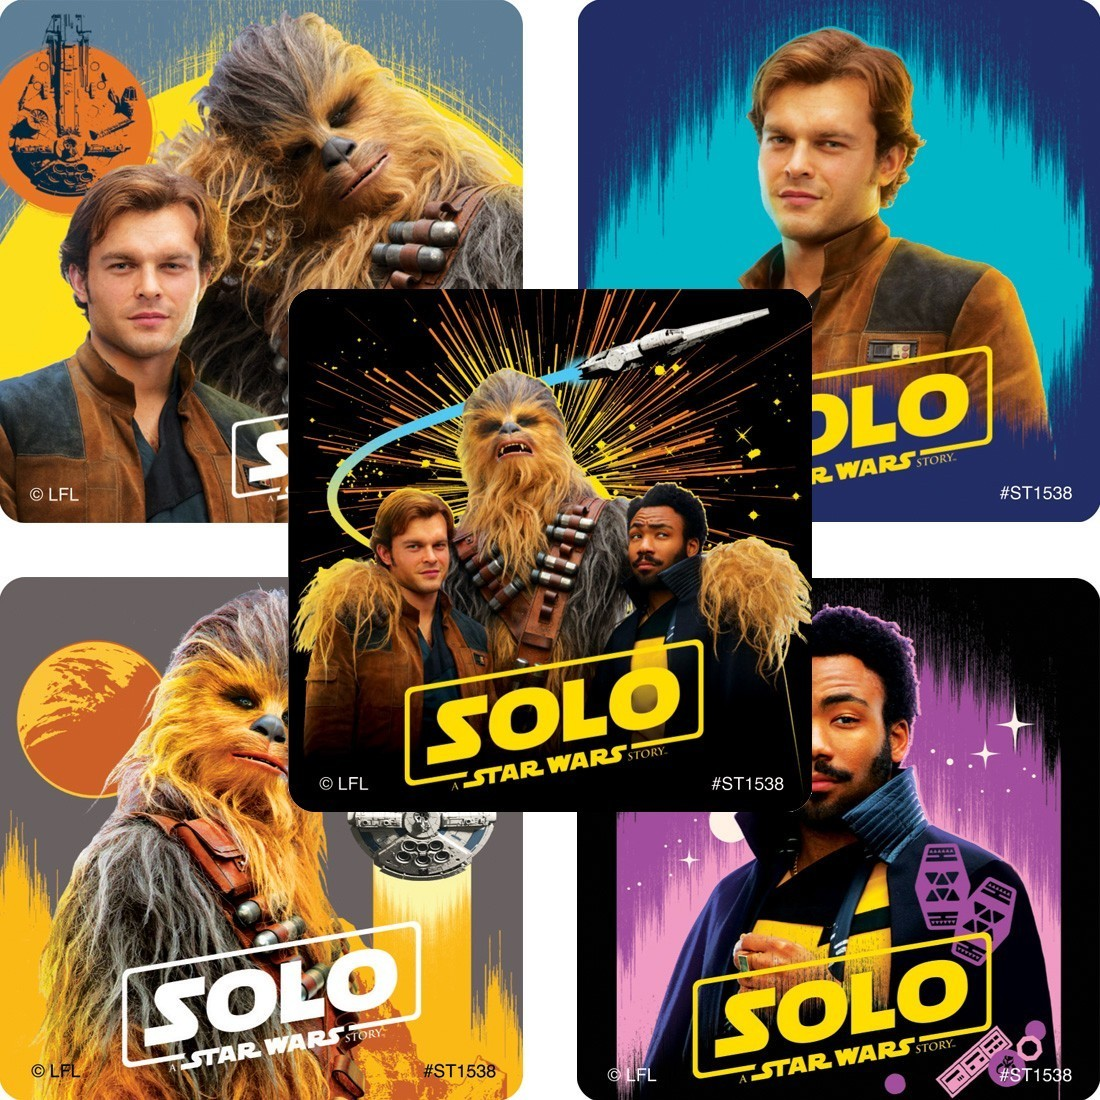 Solo: A Star Wars Story Movie Stickers [image]